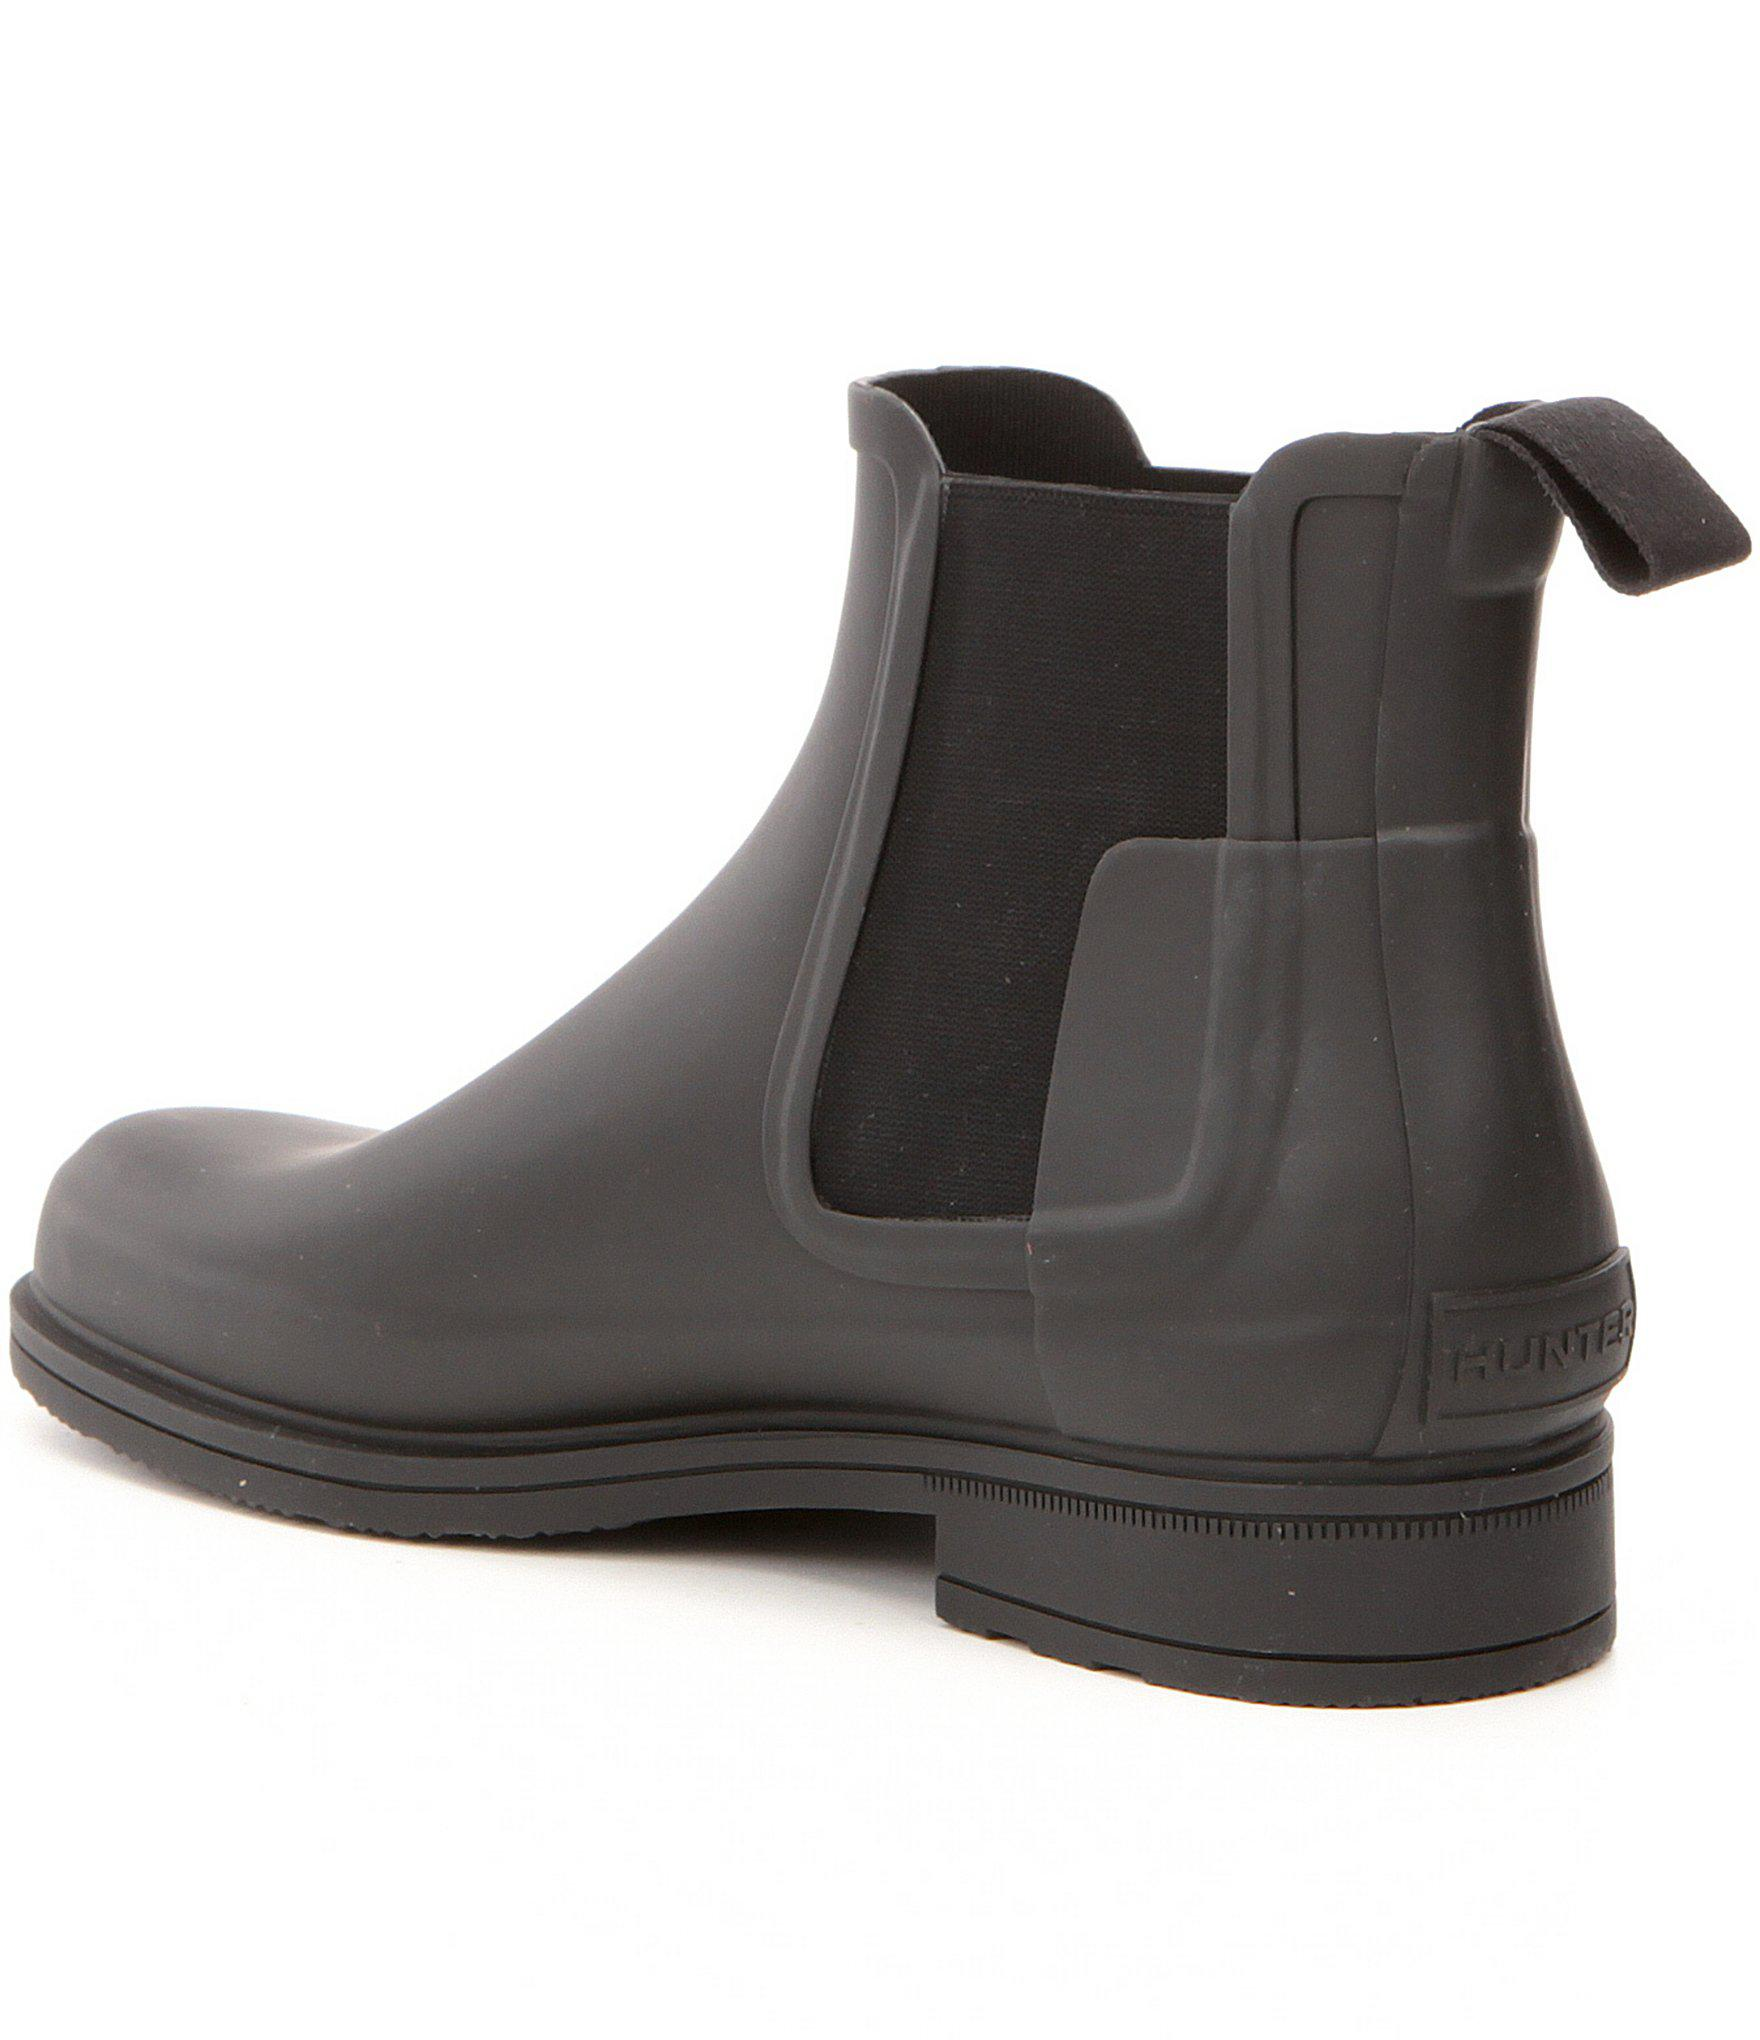 39d413660993 Hunter - Black Men s Original Waterproof Refined Chelsea Boots for Men -  Lyst. View fullscreen